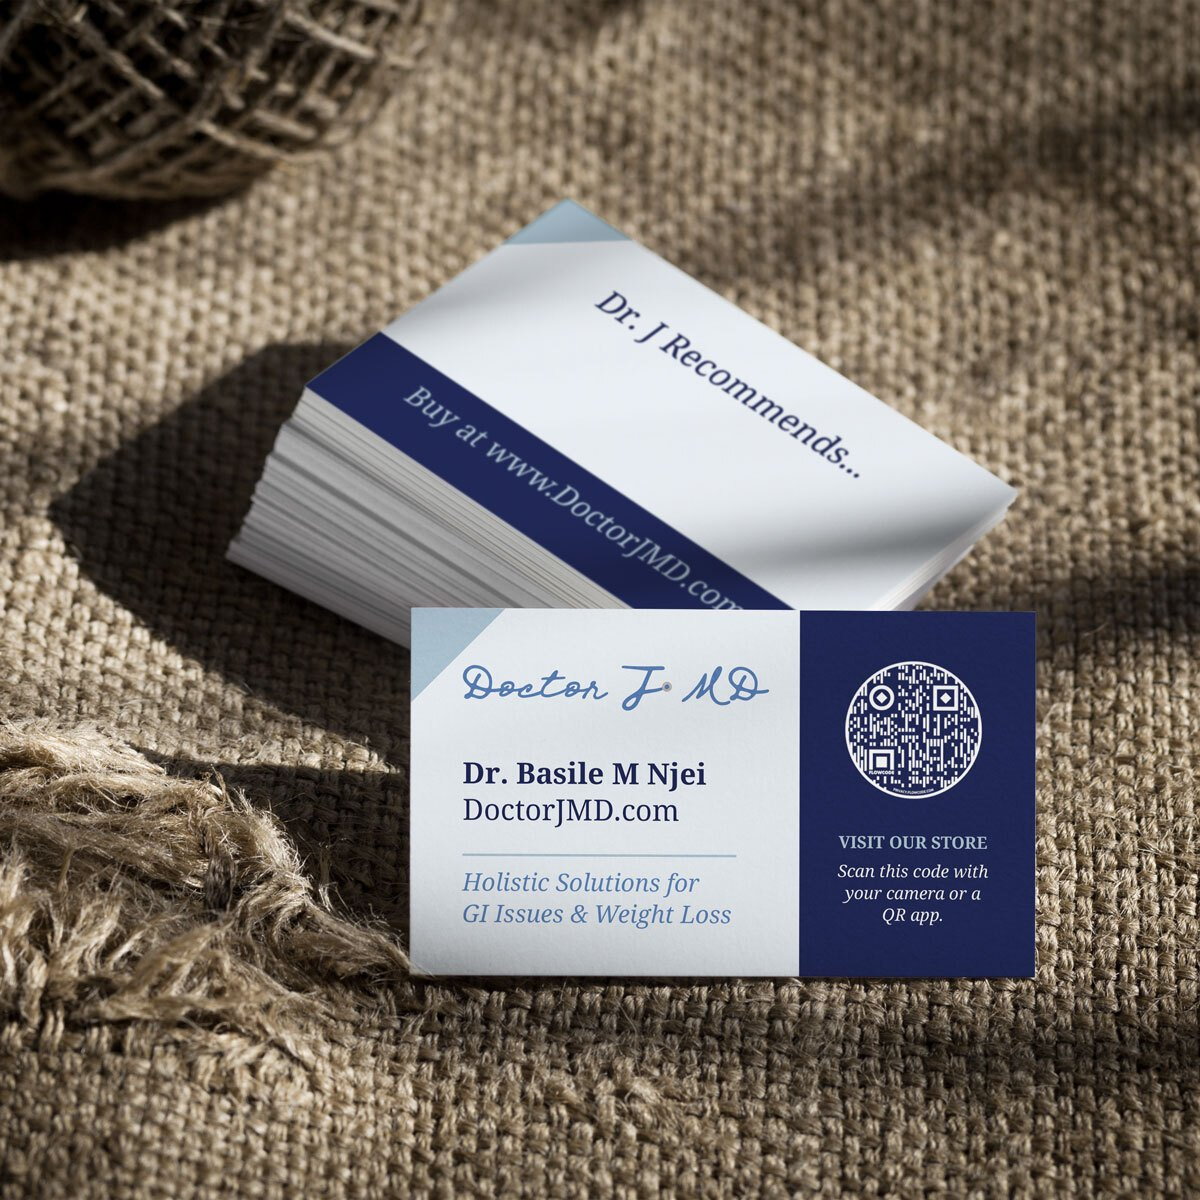 Wellness company business card design from BrandSwan, a Delaware branding agency